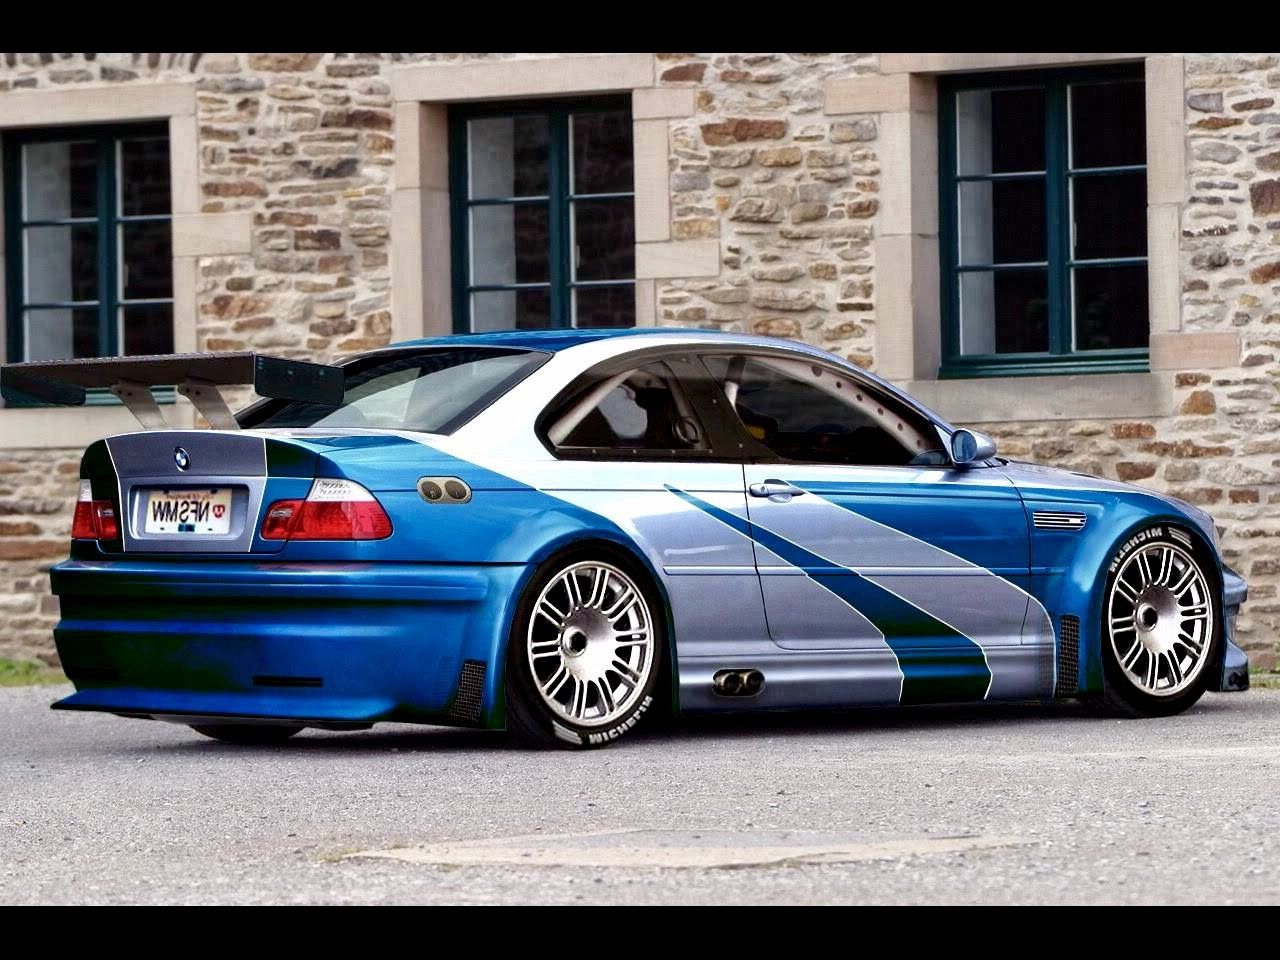 M3gts Nfsmw Bmw With Images Bmw Bmw M3 Need For Speed Cars